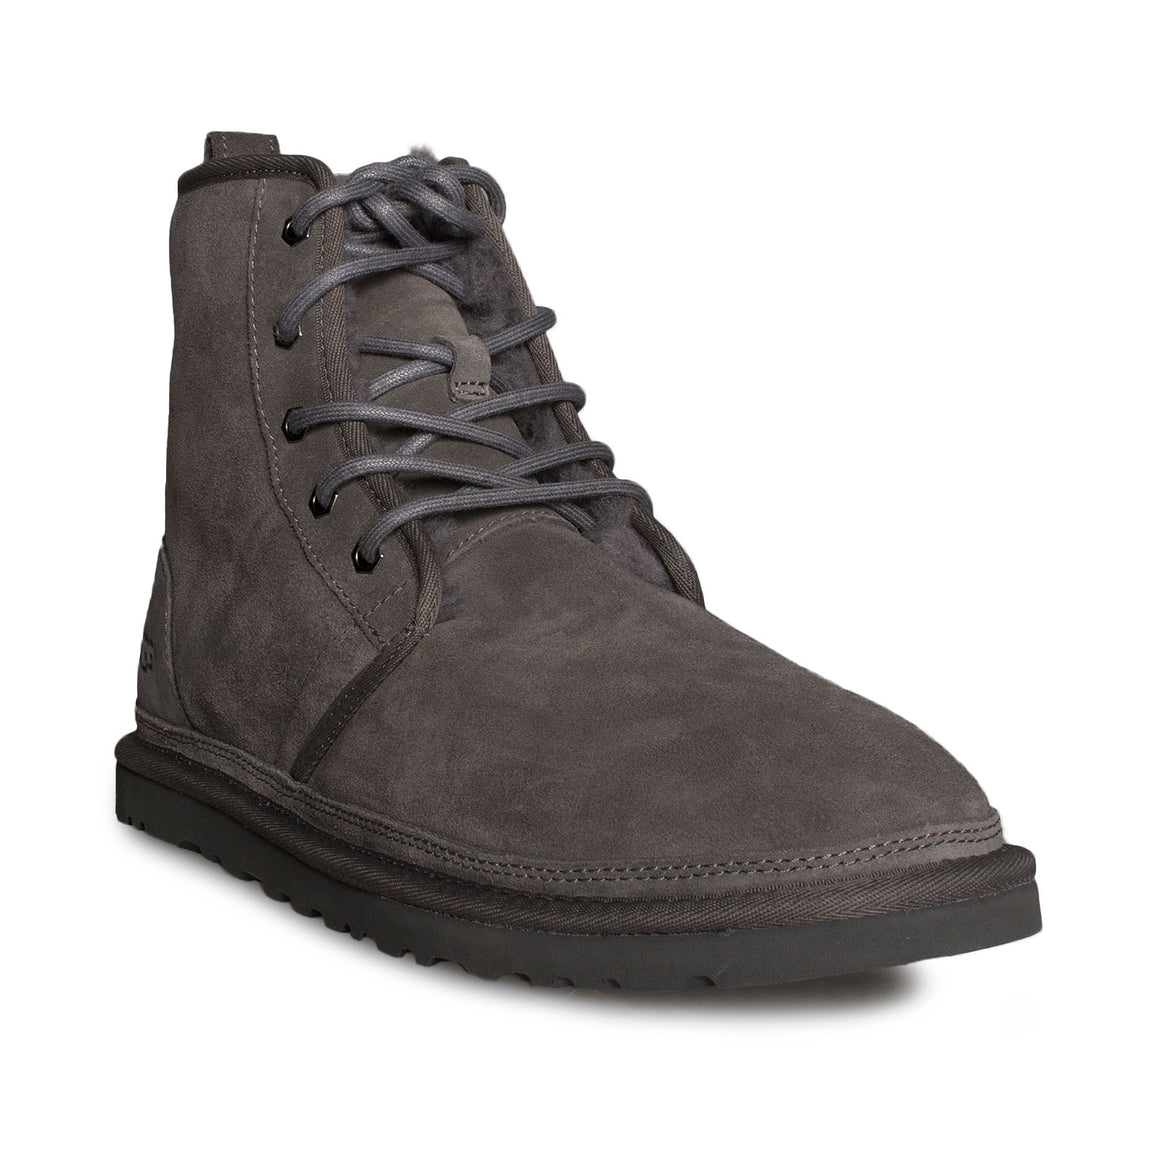 UGG Harkley Charcoal Shoes - Men's